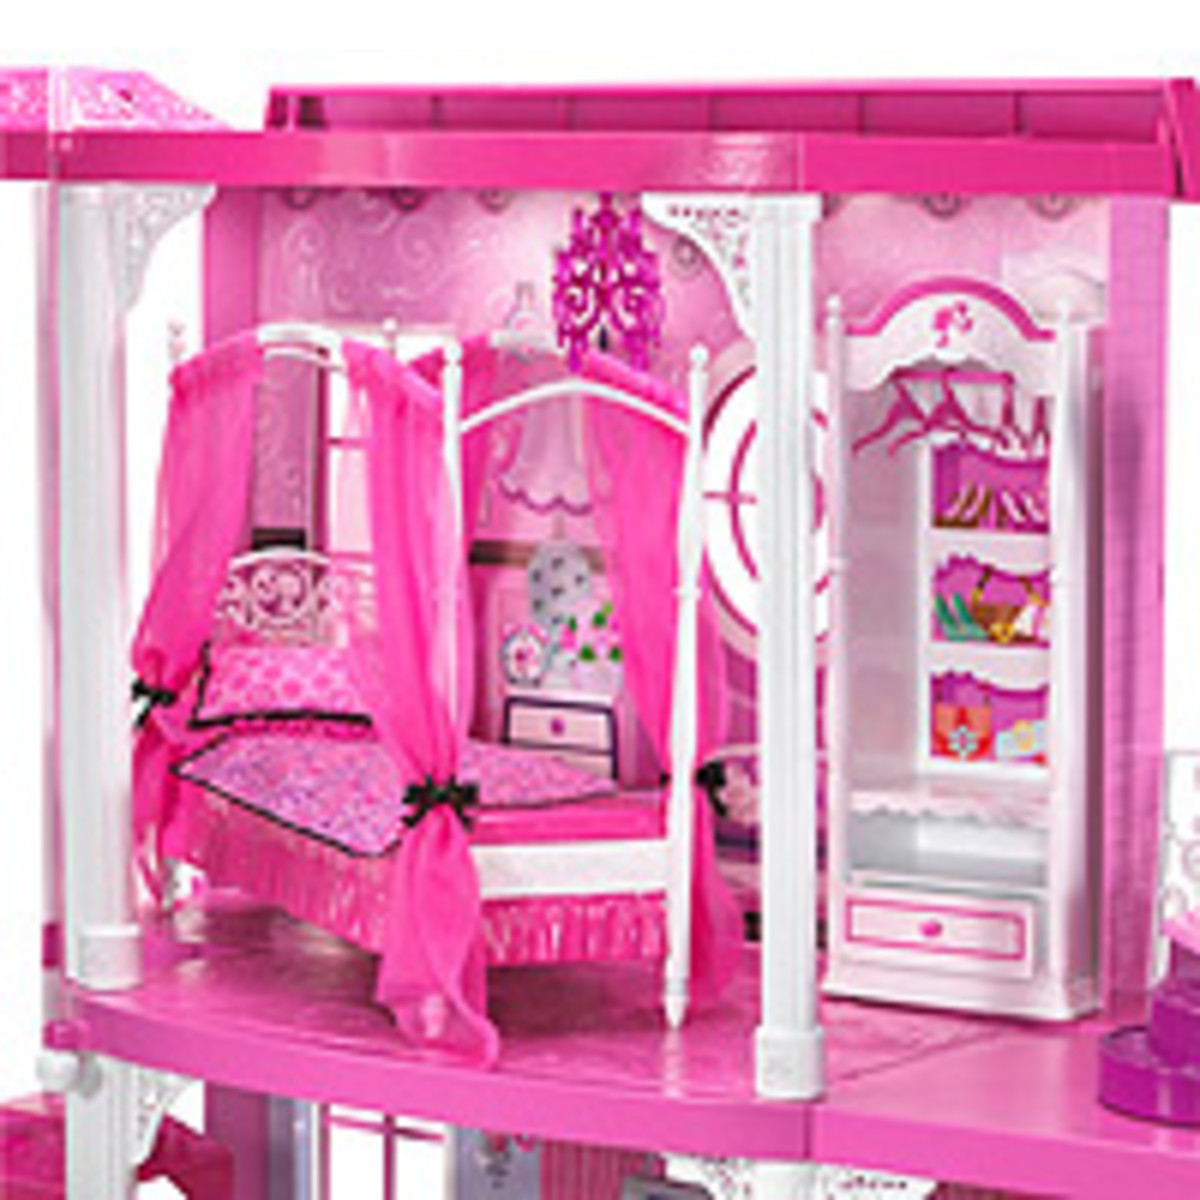 Barbies Bedroom suite is upstairs and it has a dreamy canopy bed, with a spacious wardrobe and cyrstal chandelier.